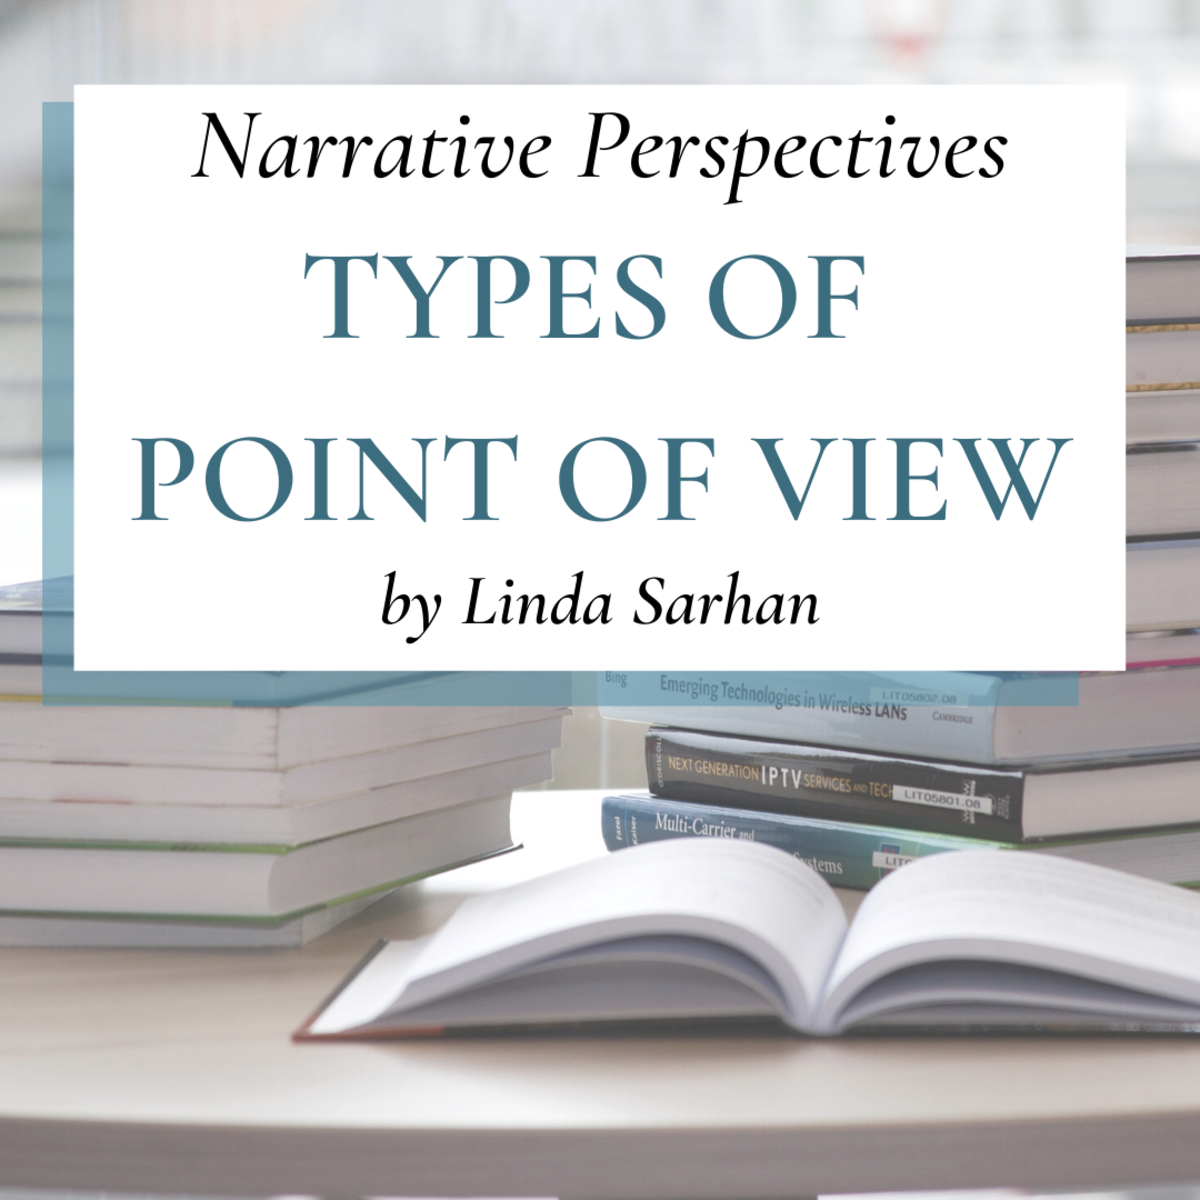 Narrative Perspectives: Types of Point of View